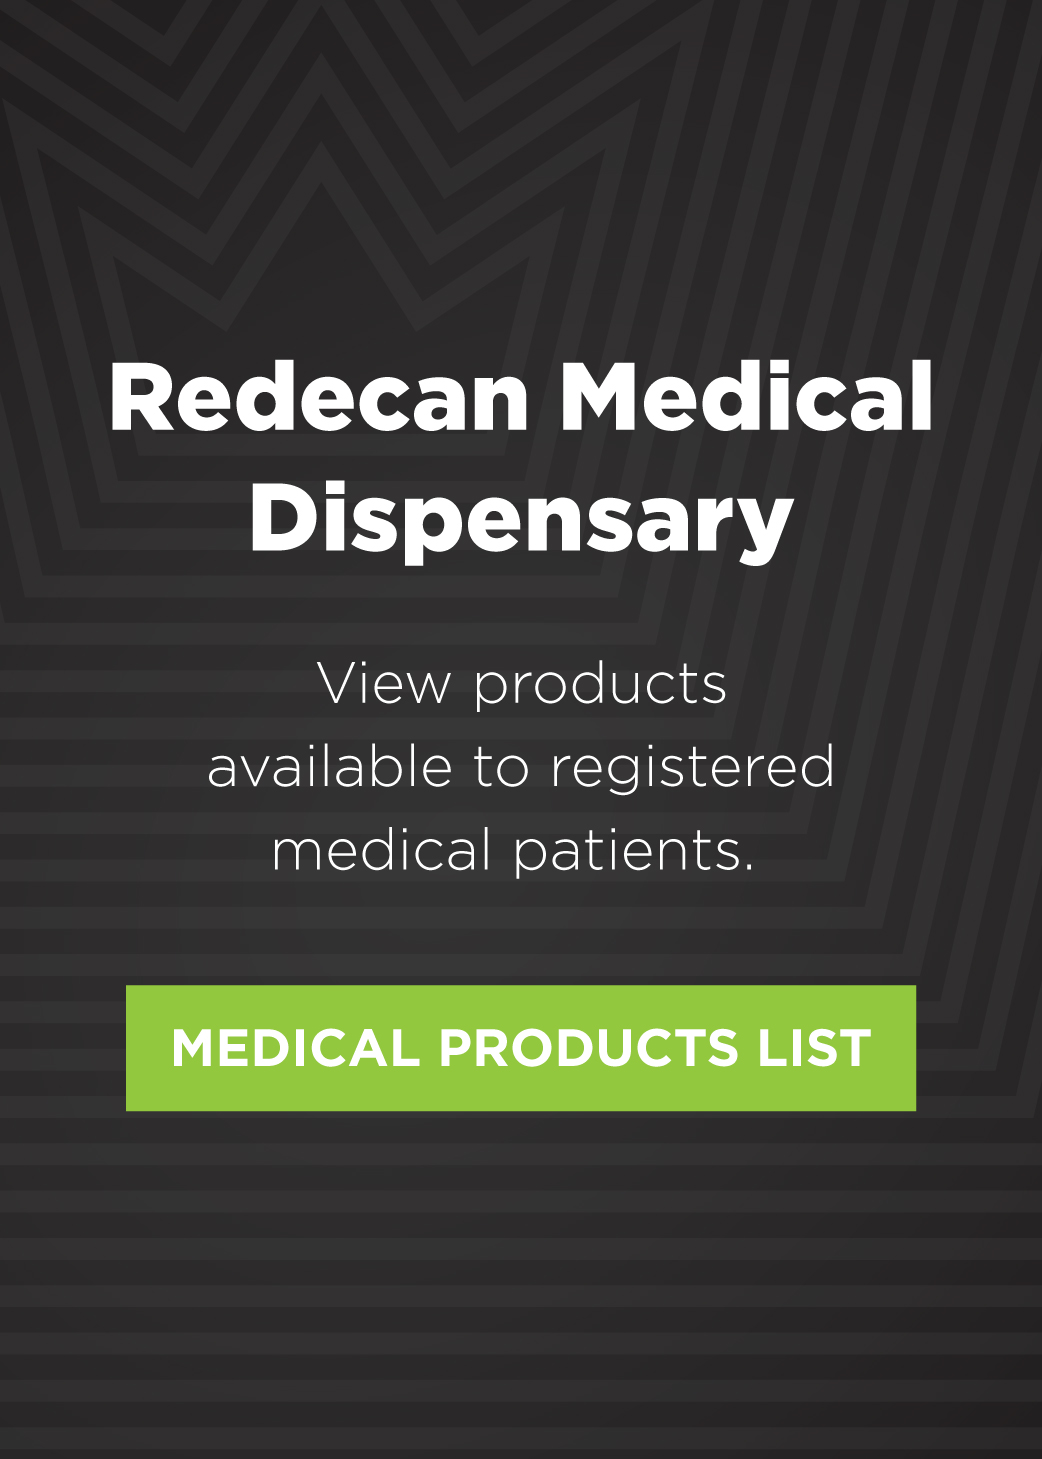 Medical Dispensary Image